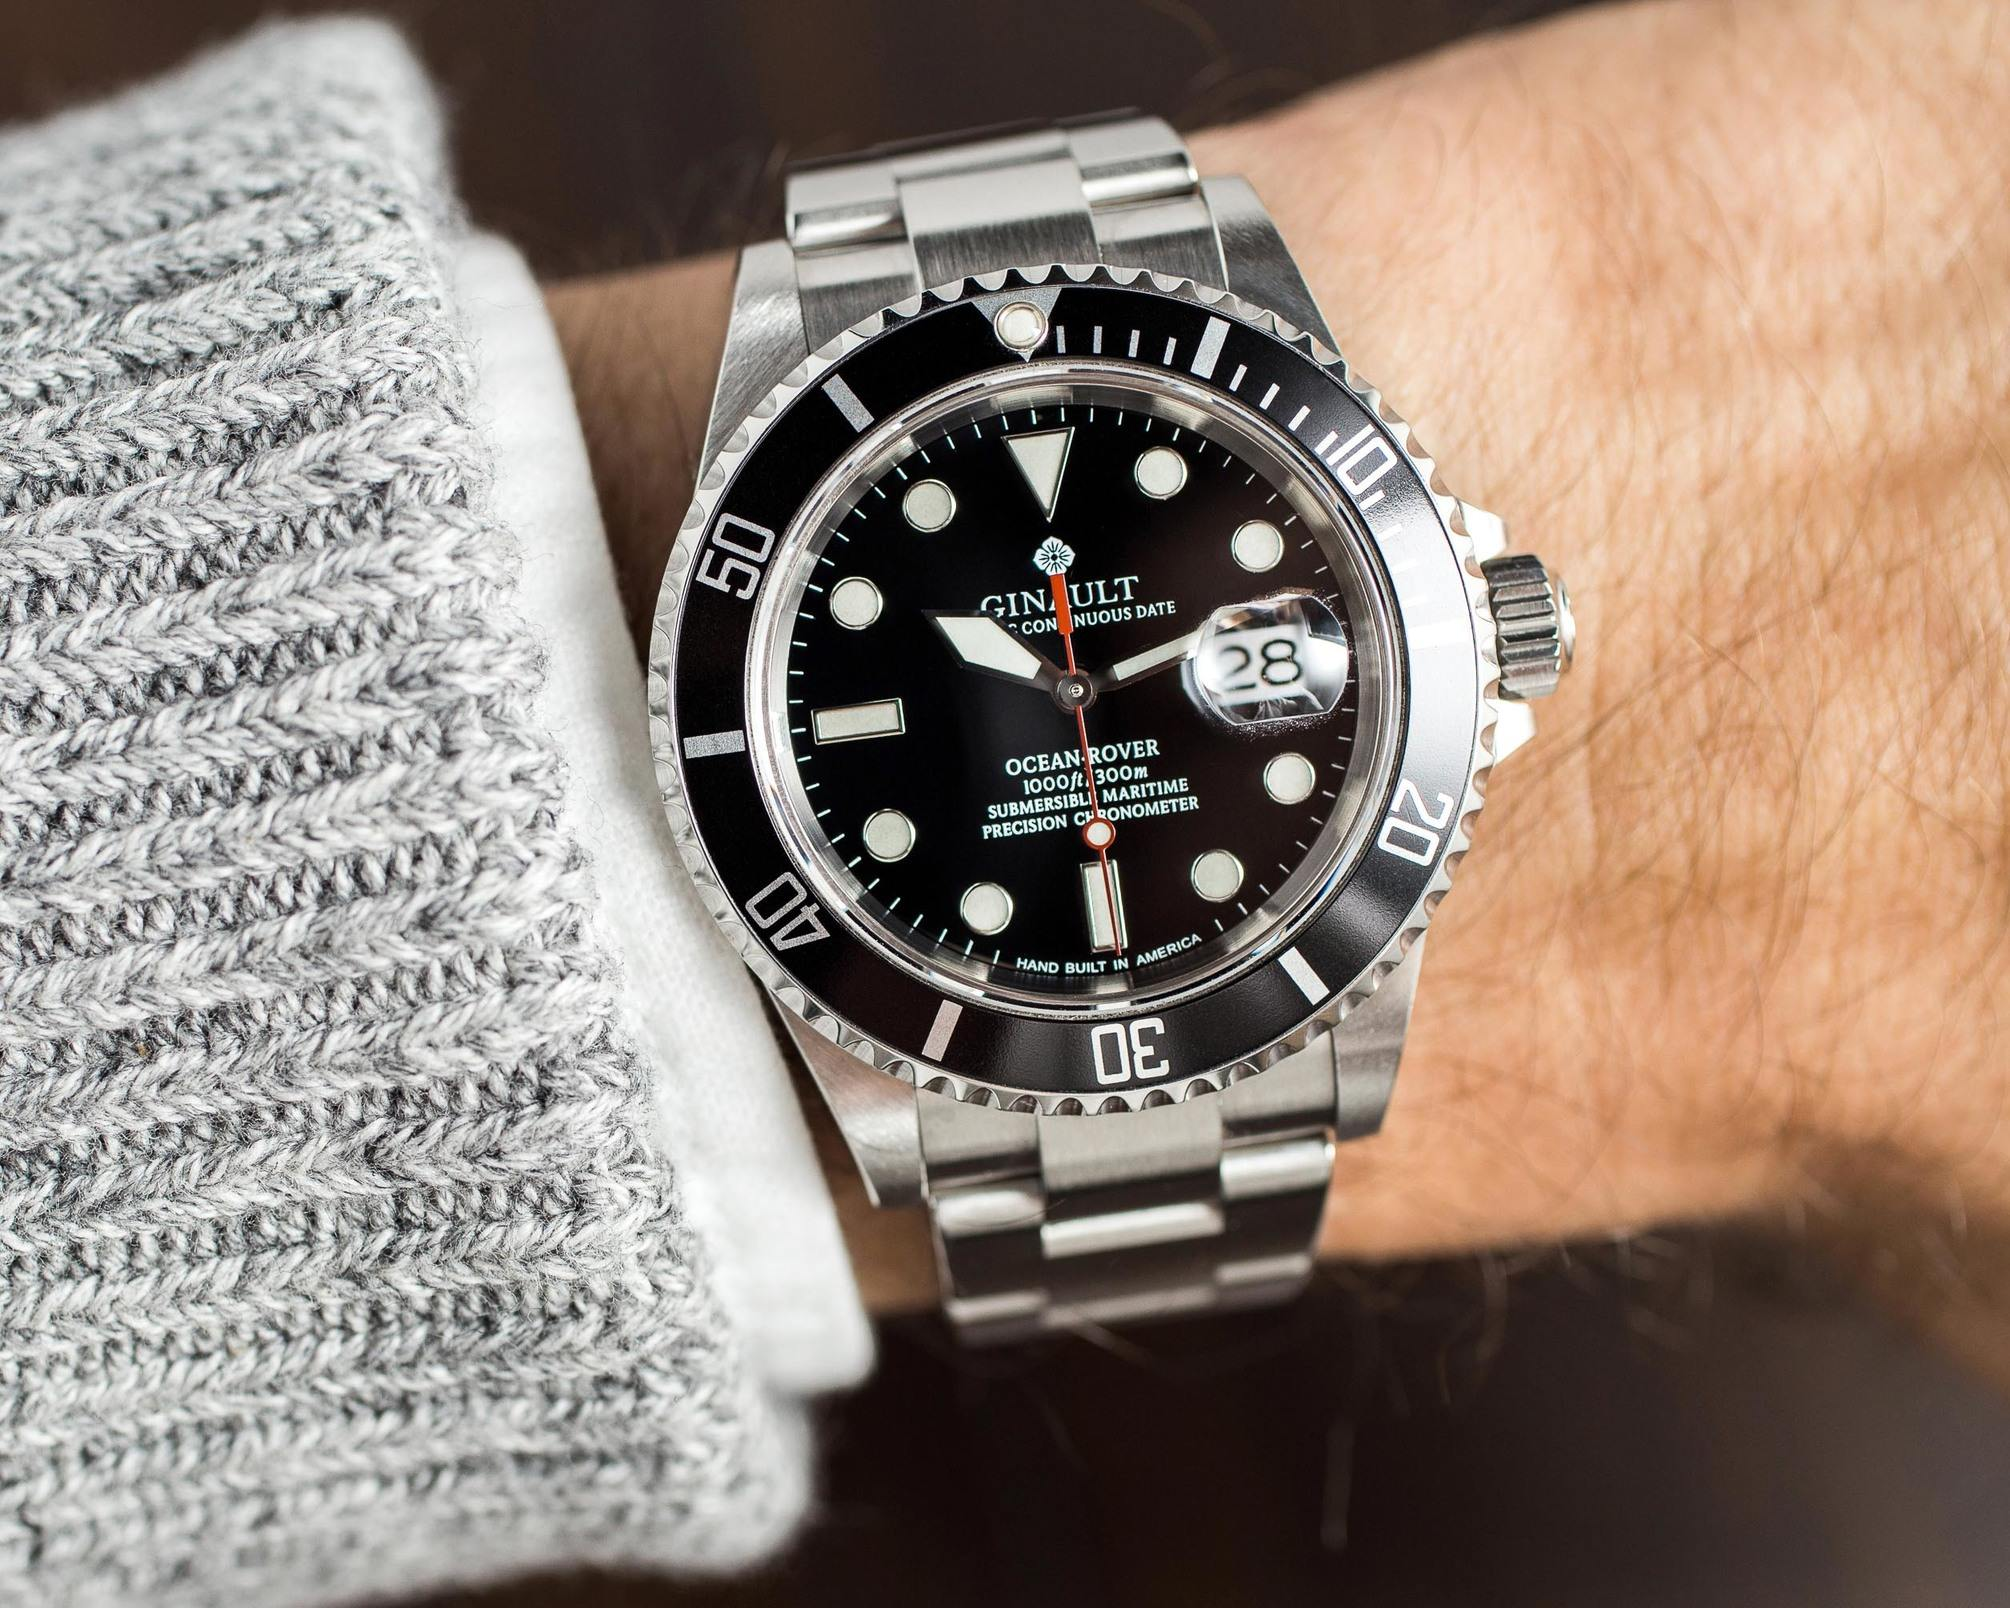 Ginault Ocean Rover review